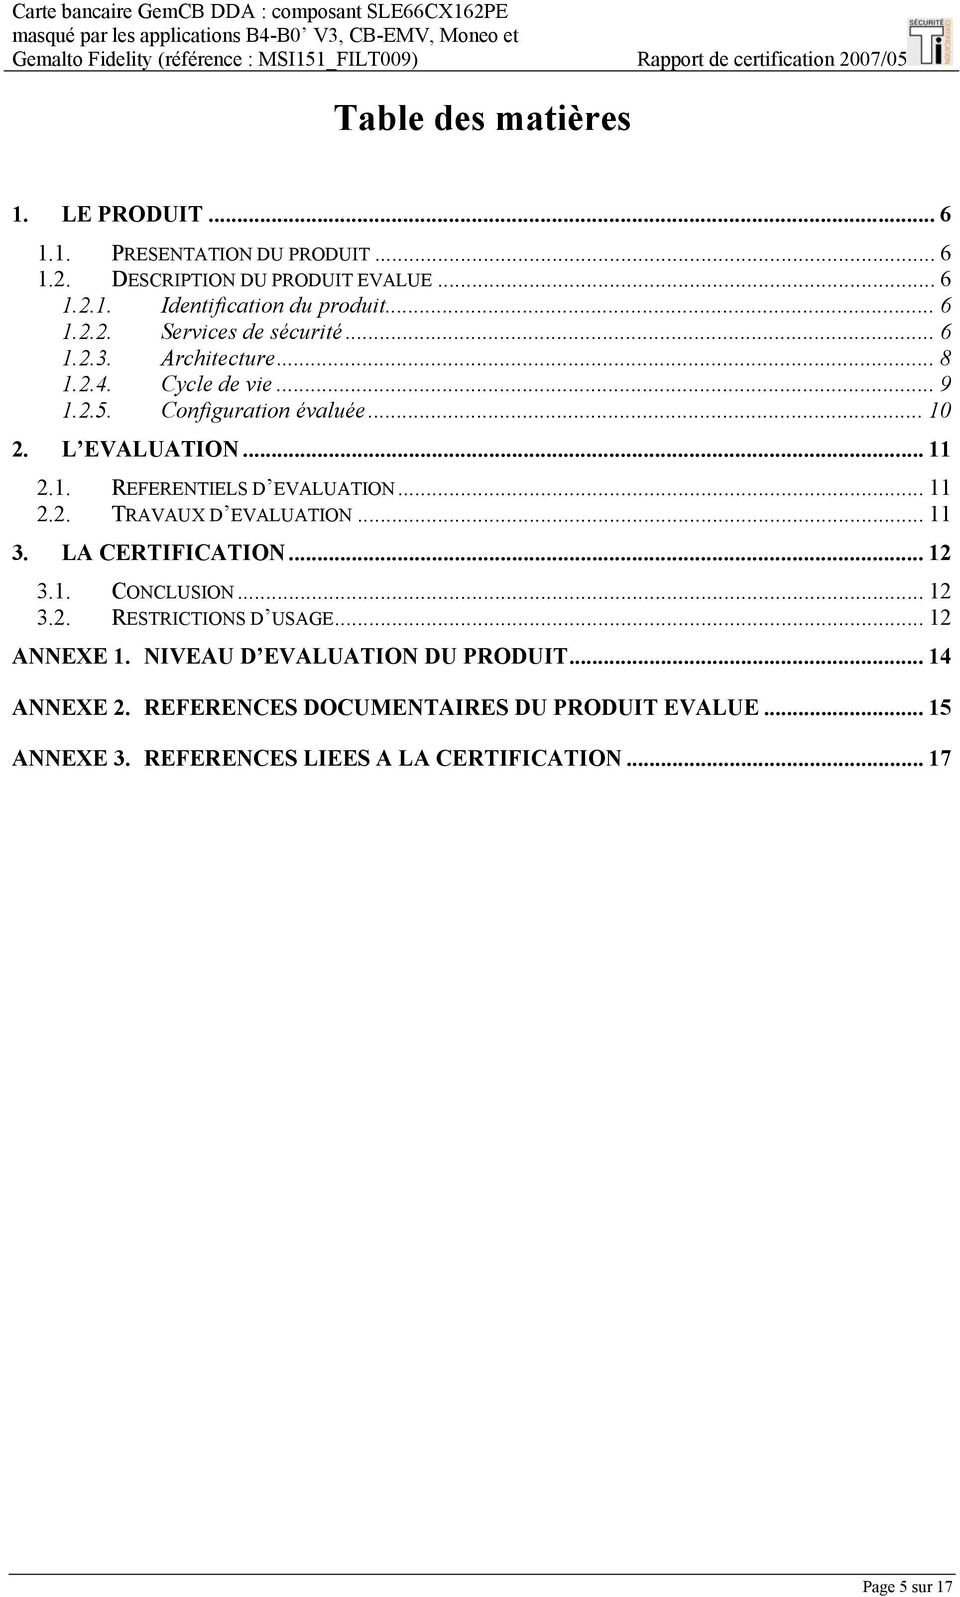 L EVALUATION... 11 2.1. REFERENTIELS D EVALUATION... 11 2.2. TRAVAUX D EVALUATION... 11 3. LA CERTIFICATION... 12 3.1. CONCLUSION... 12 3.2. RESTRICTIONS D USAGE.